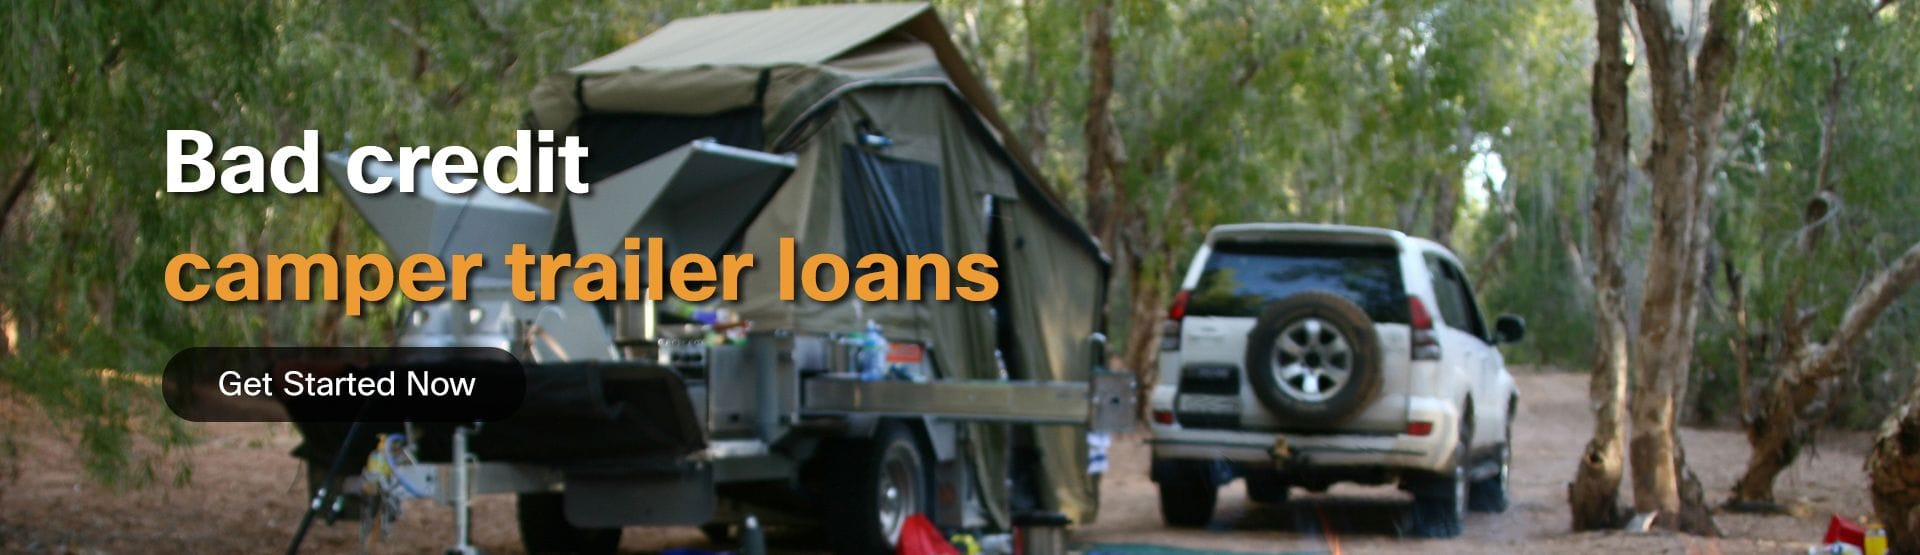 Bad Credit camper trailer loans